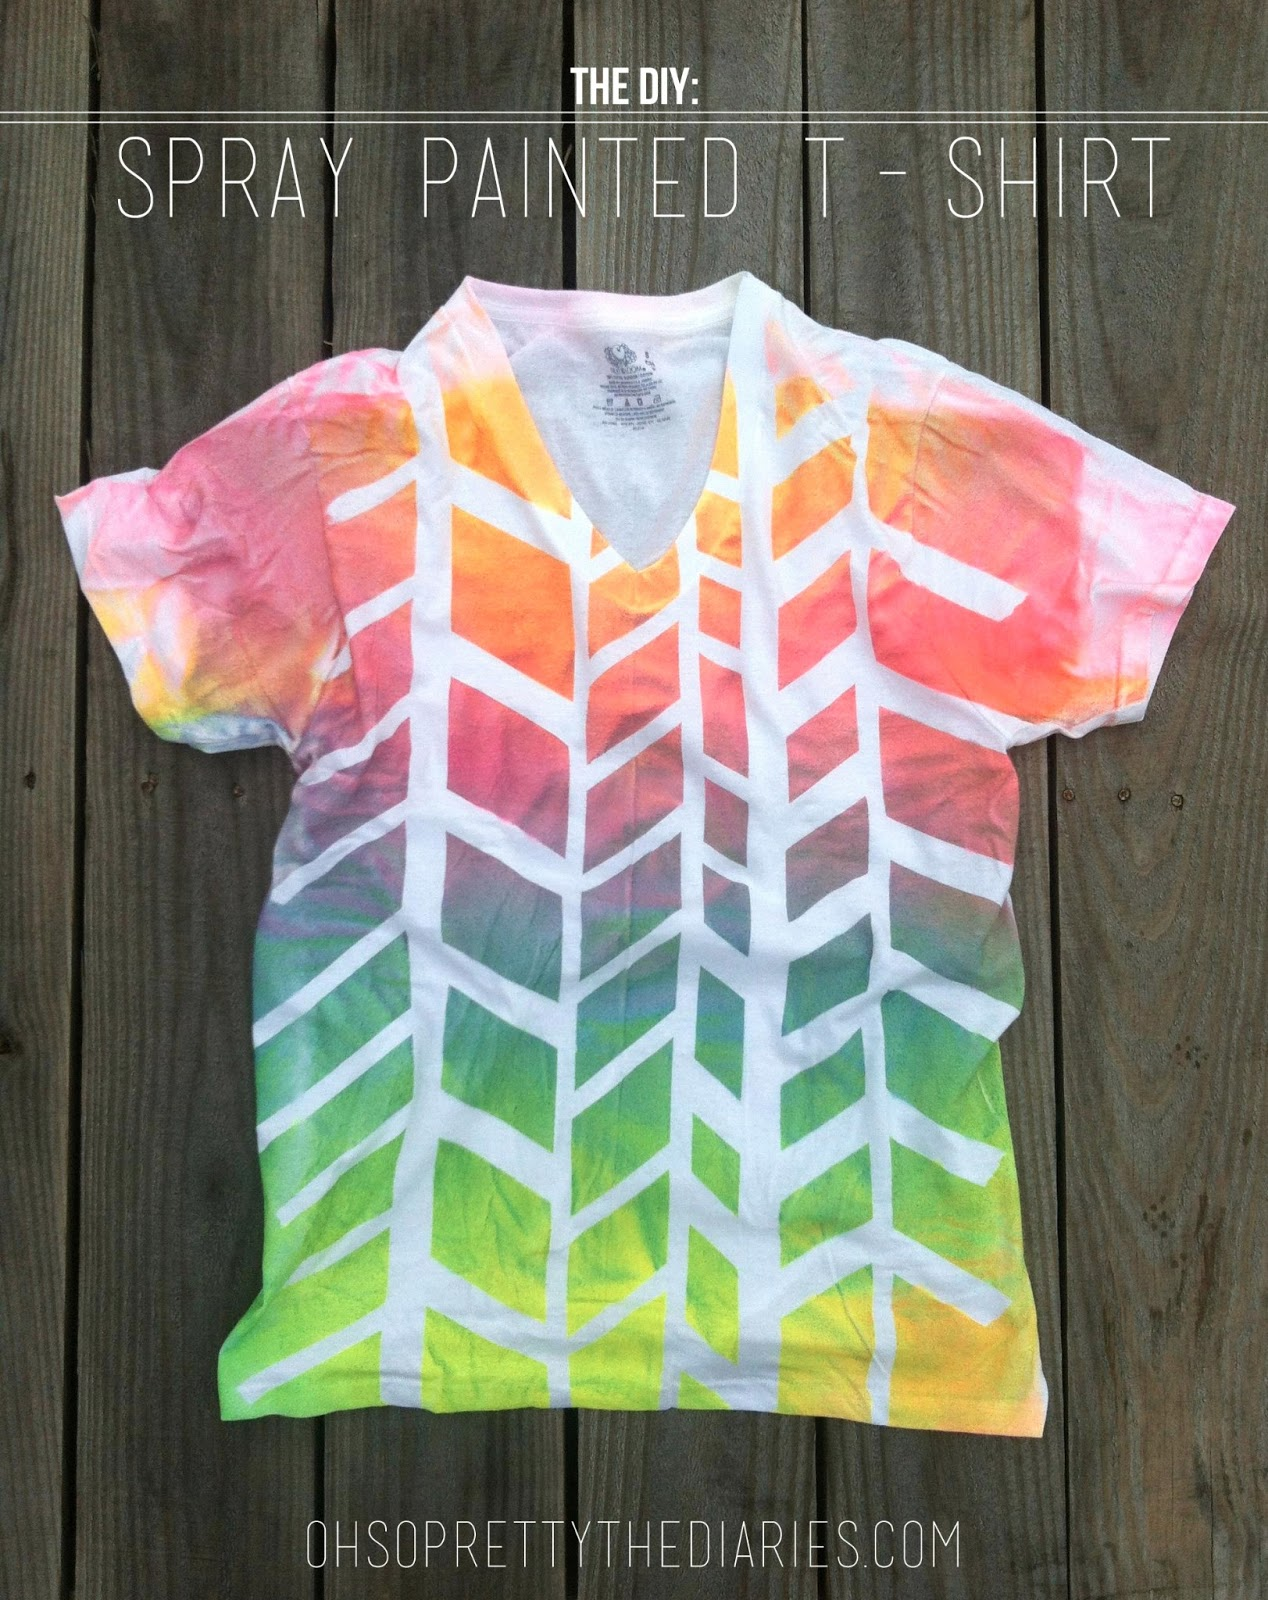 the diy spray painted t shirt